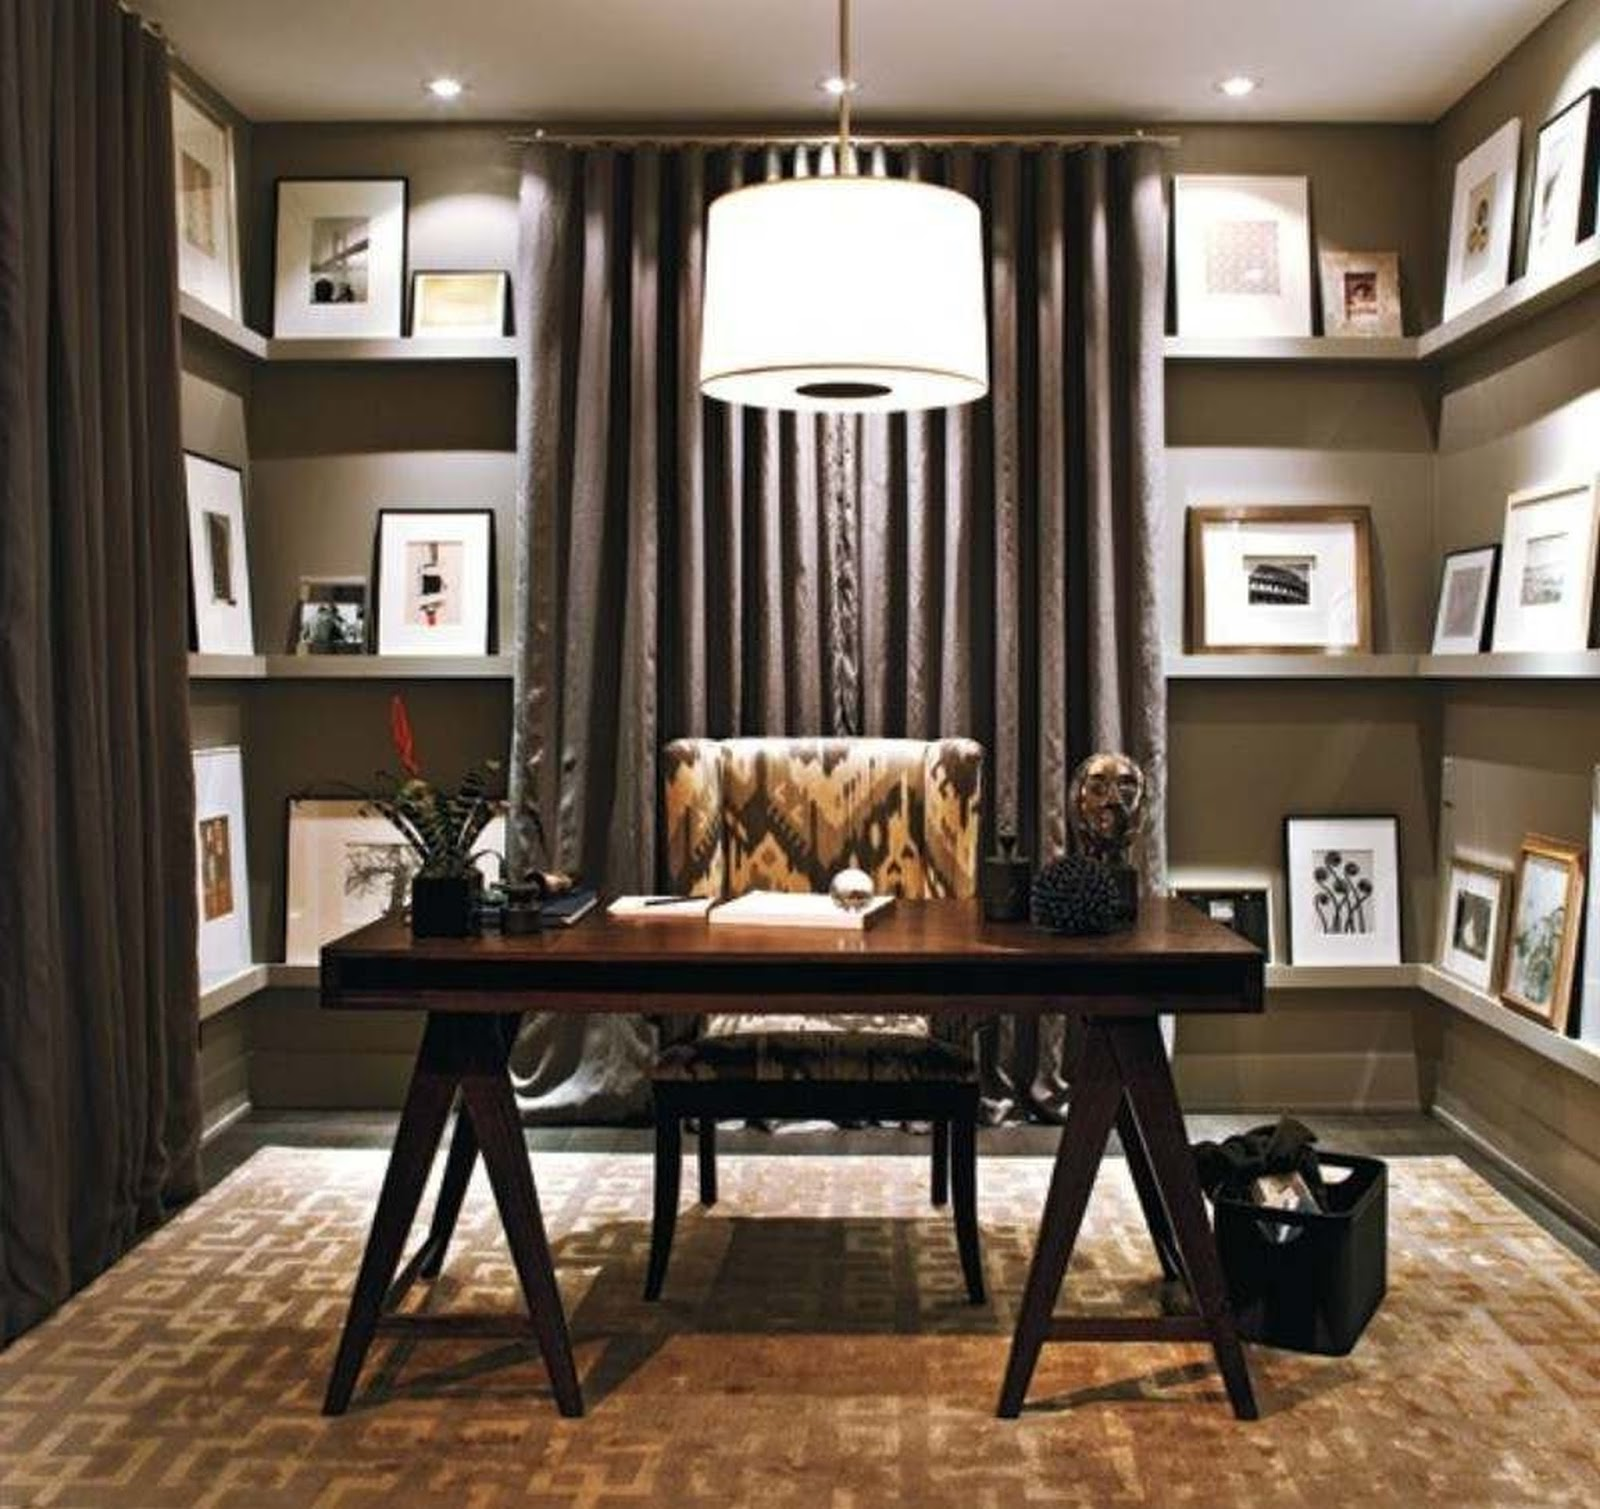 5 Tips How to Decorating an Artistic Home Office - Interior Design Ideas